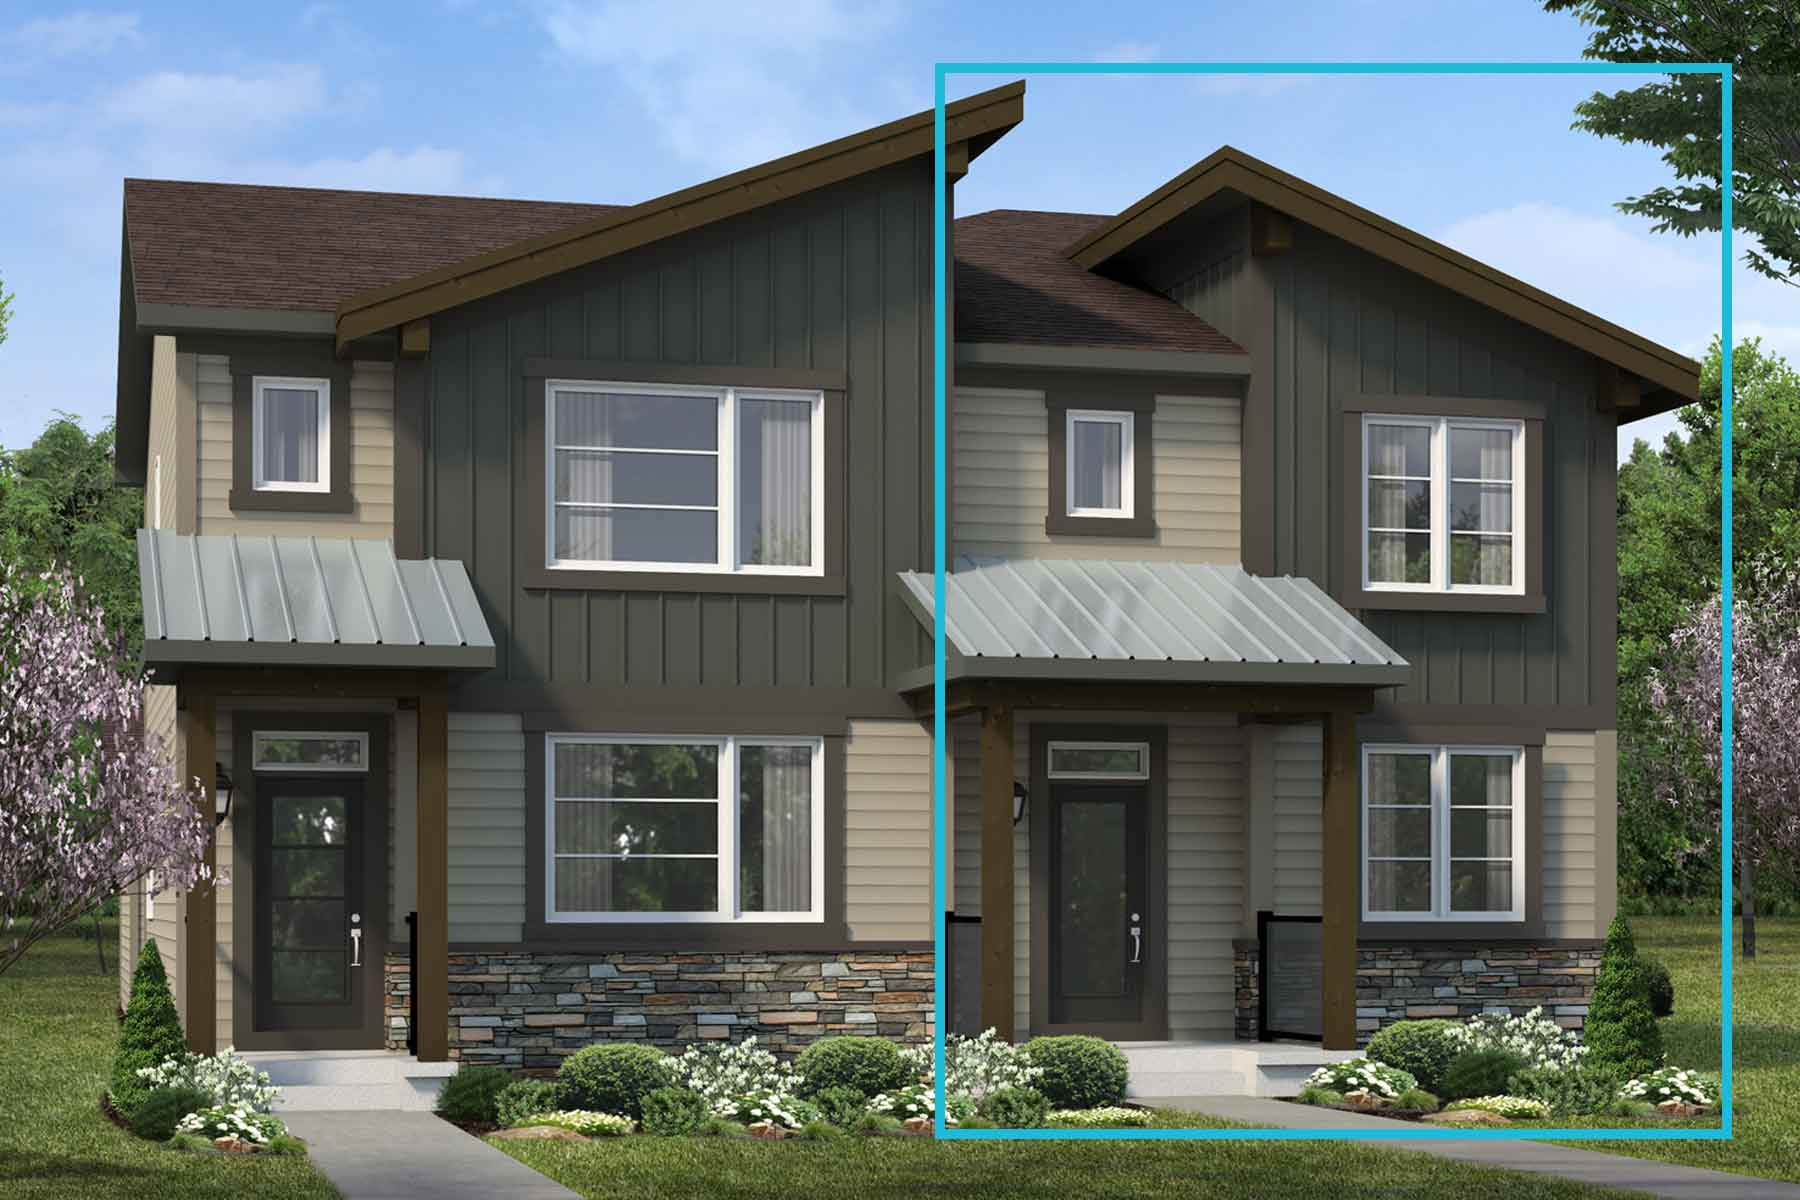 Palliser Plan elevationmountaincontemporary_carrington_palliser_main at Carrington in Calgary Alberta by Mattamy Homes